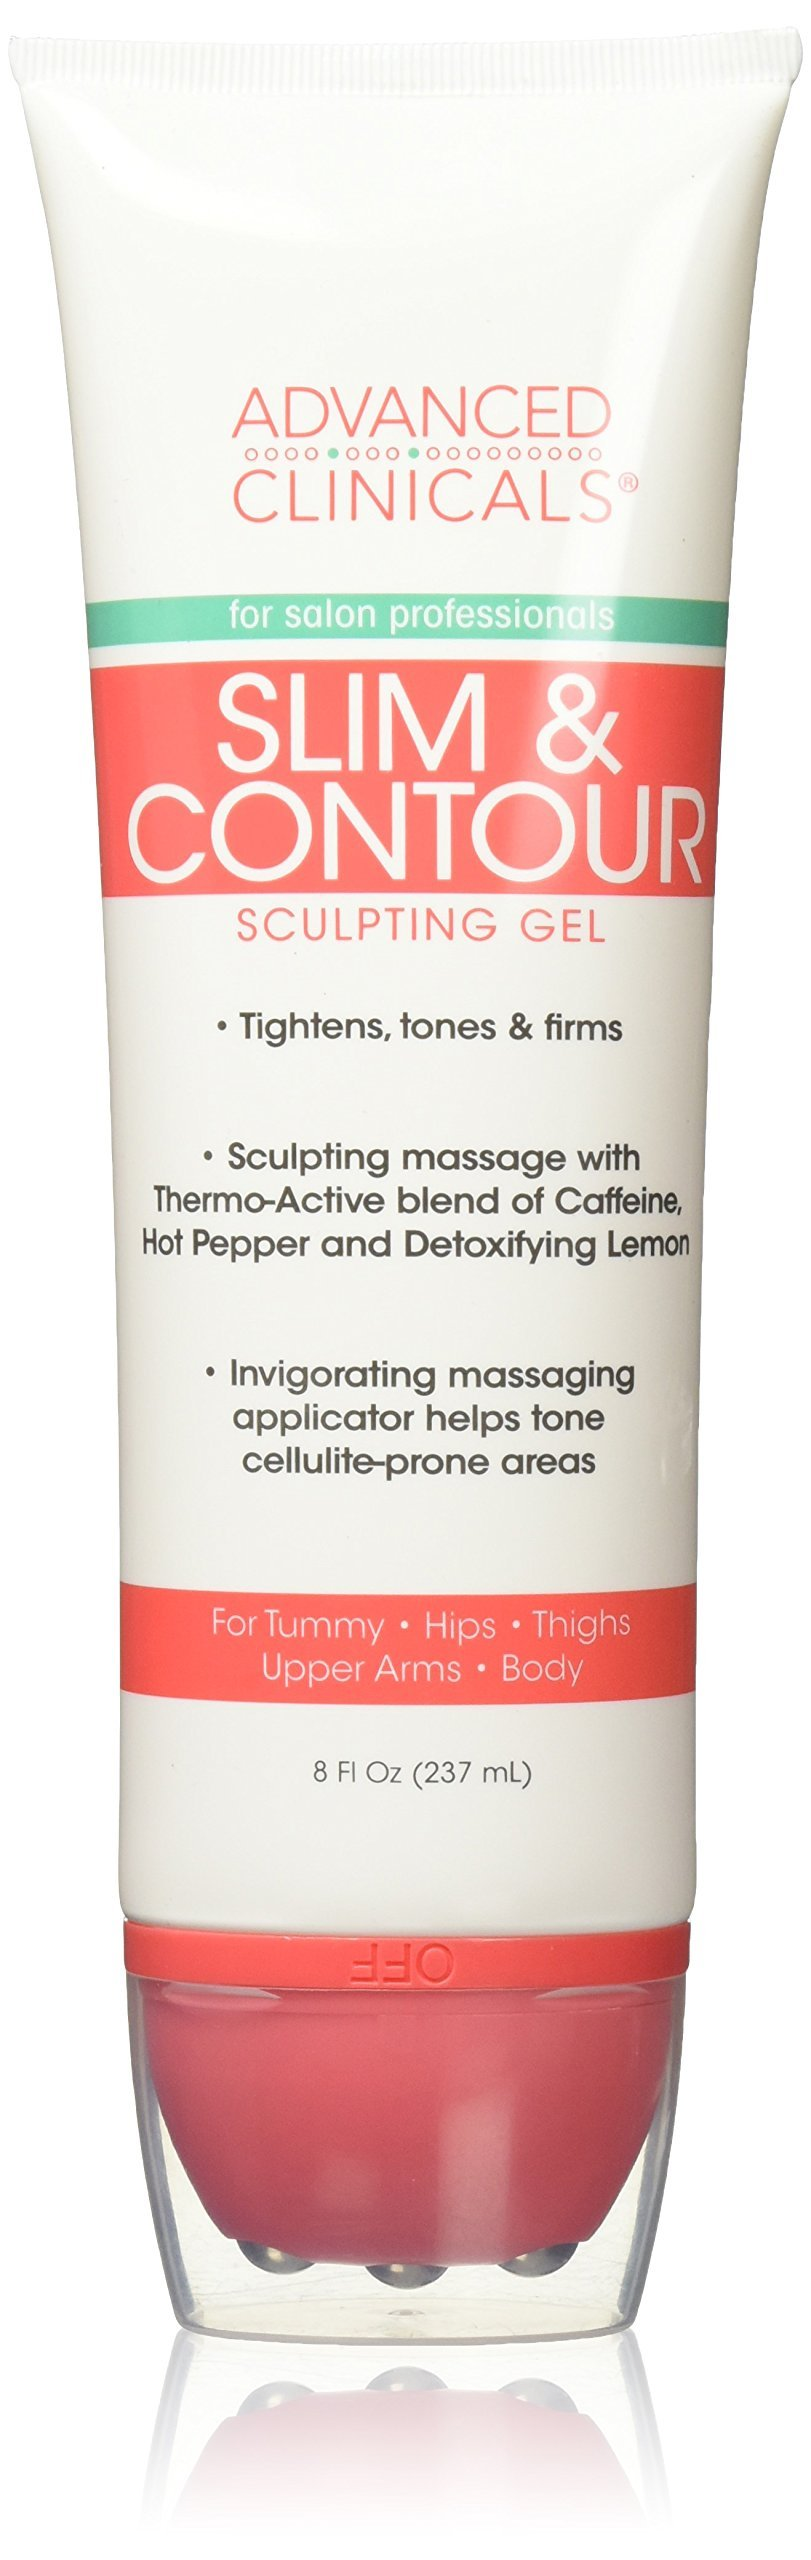 Advanced Clinicals Slim & Contour Sculpting Gel. Massaging Gel with Applicator for Tummy, Hips, Thighs, Upper Arms, Body. With Capsaicin, Coffee Bean Oil, and Seaweed. 8oz tube.